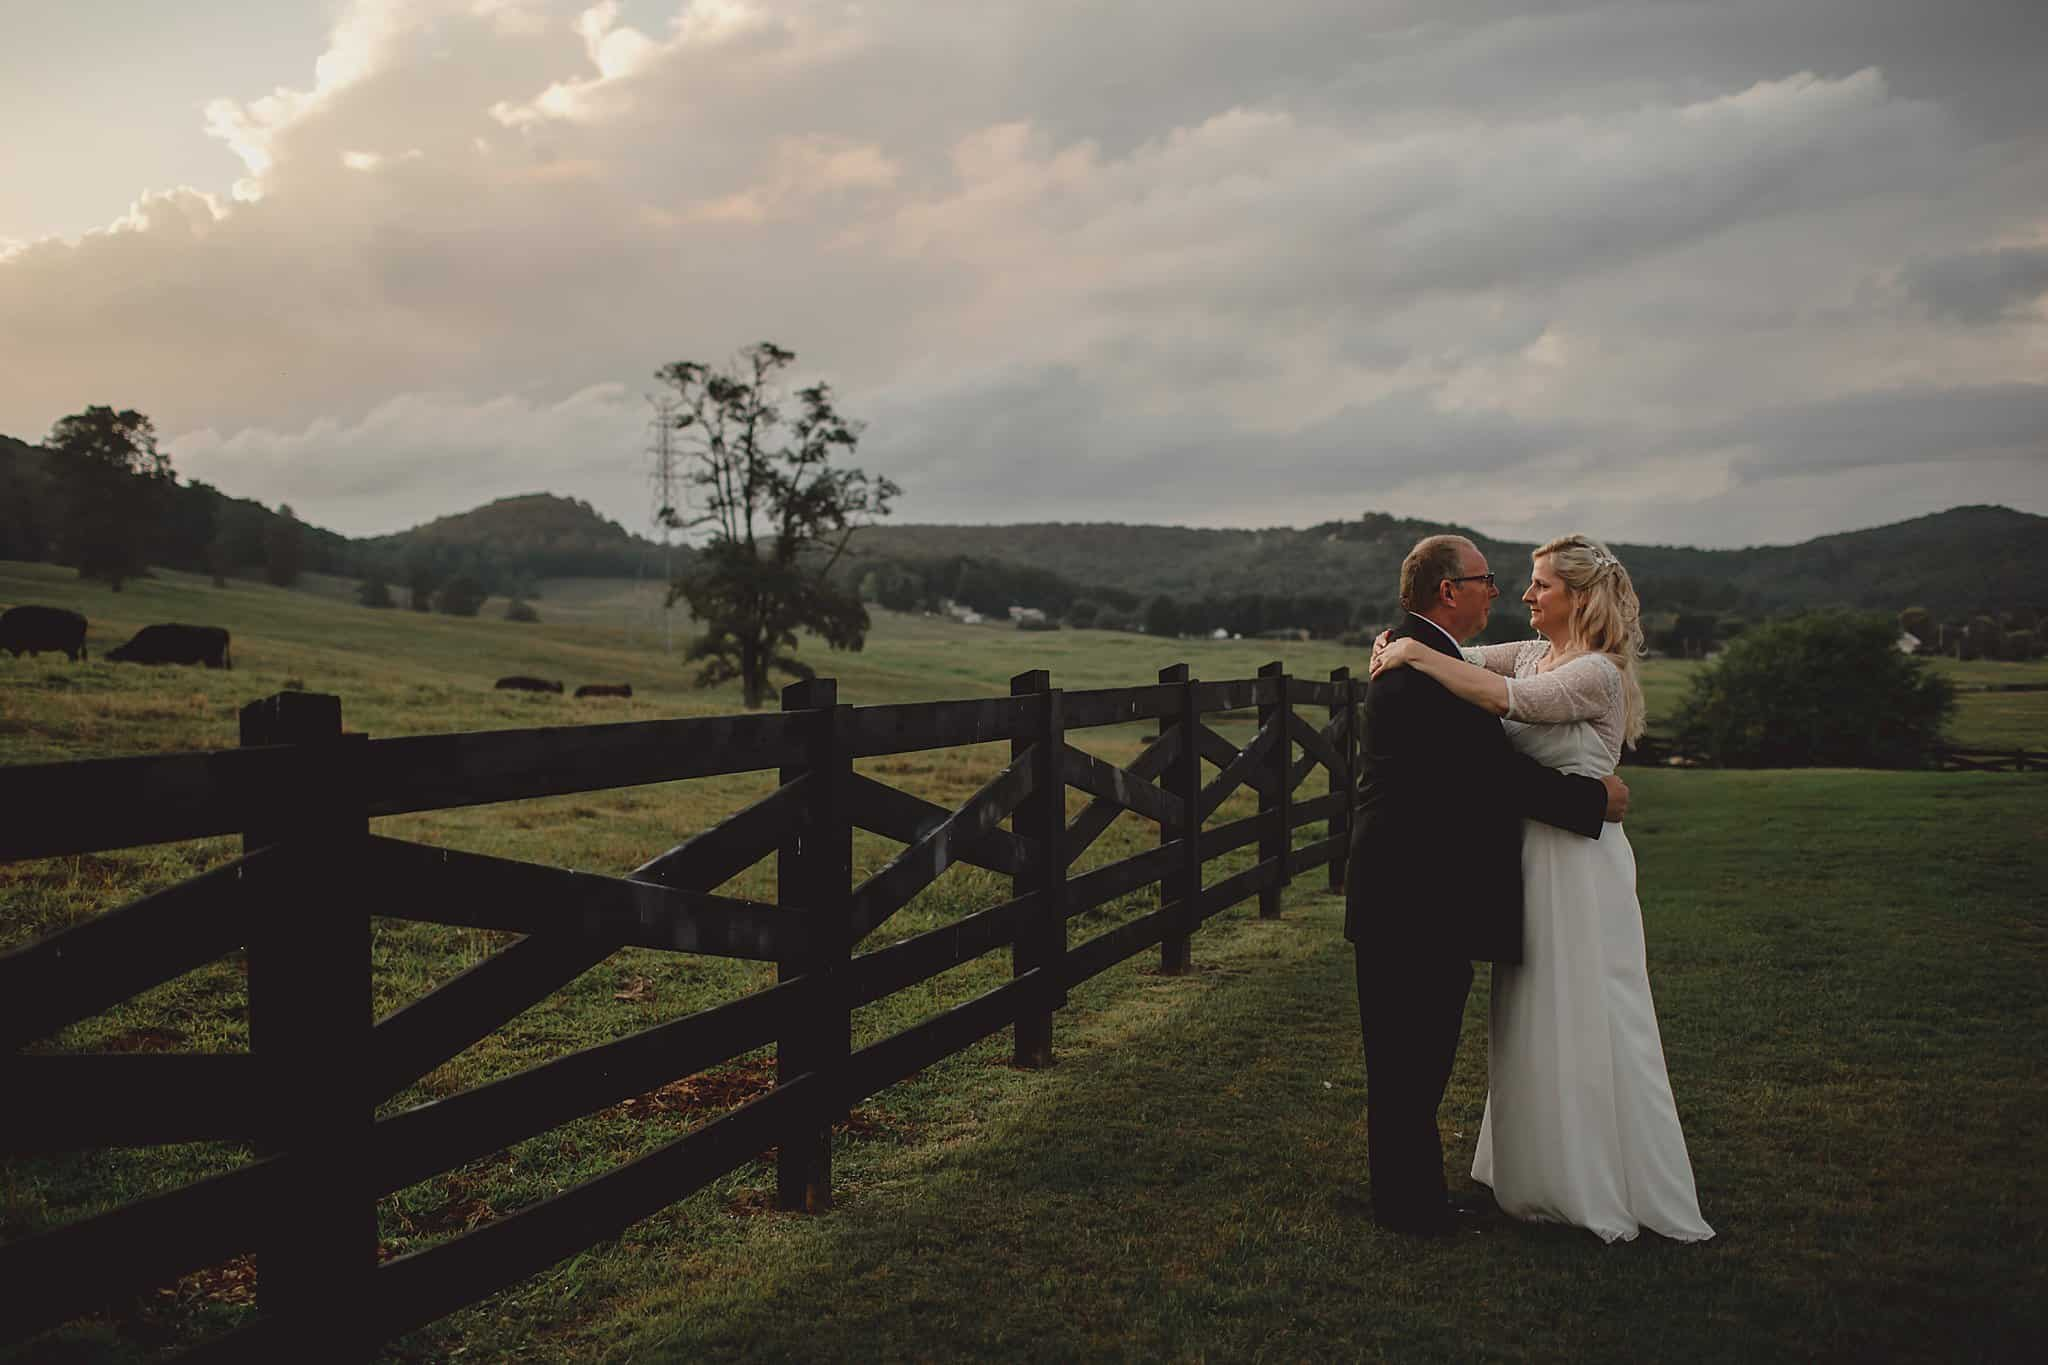 Shelley & Harold's Simply Elegant Summer Elopement at The Clark House, Livingston TN